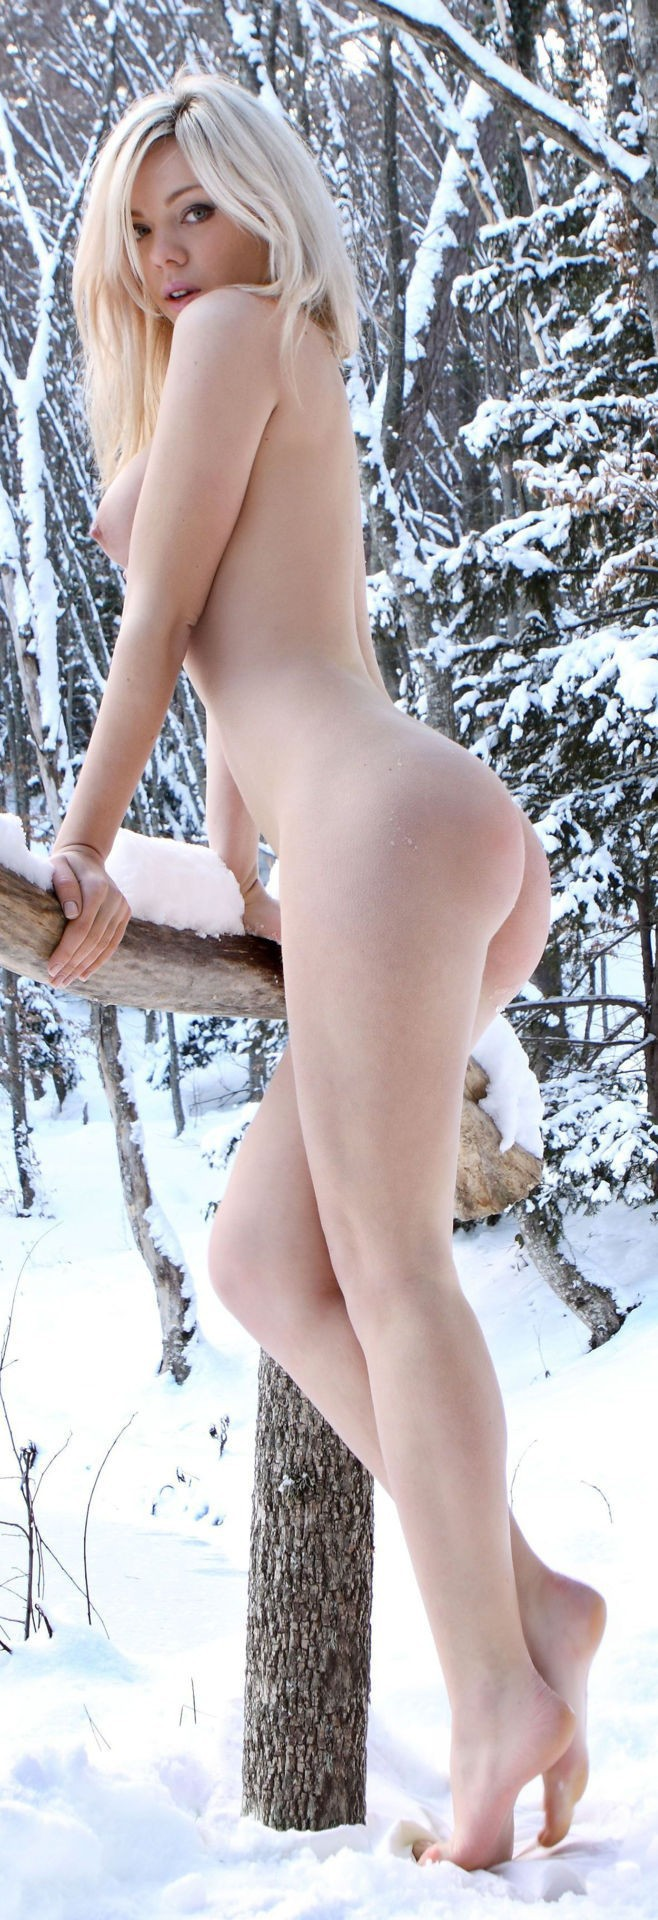 showing images for naruto and his mom porn xxx #hayleyssecrets #pine